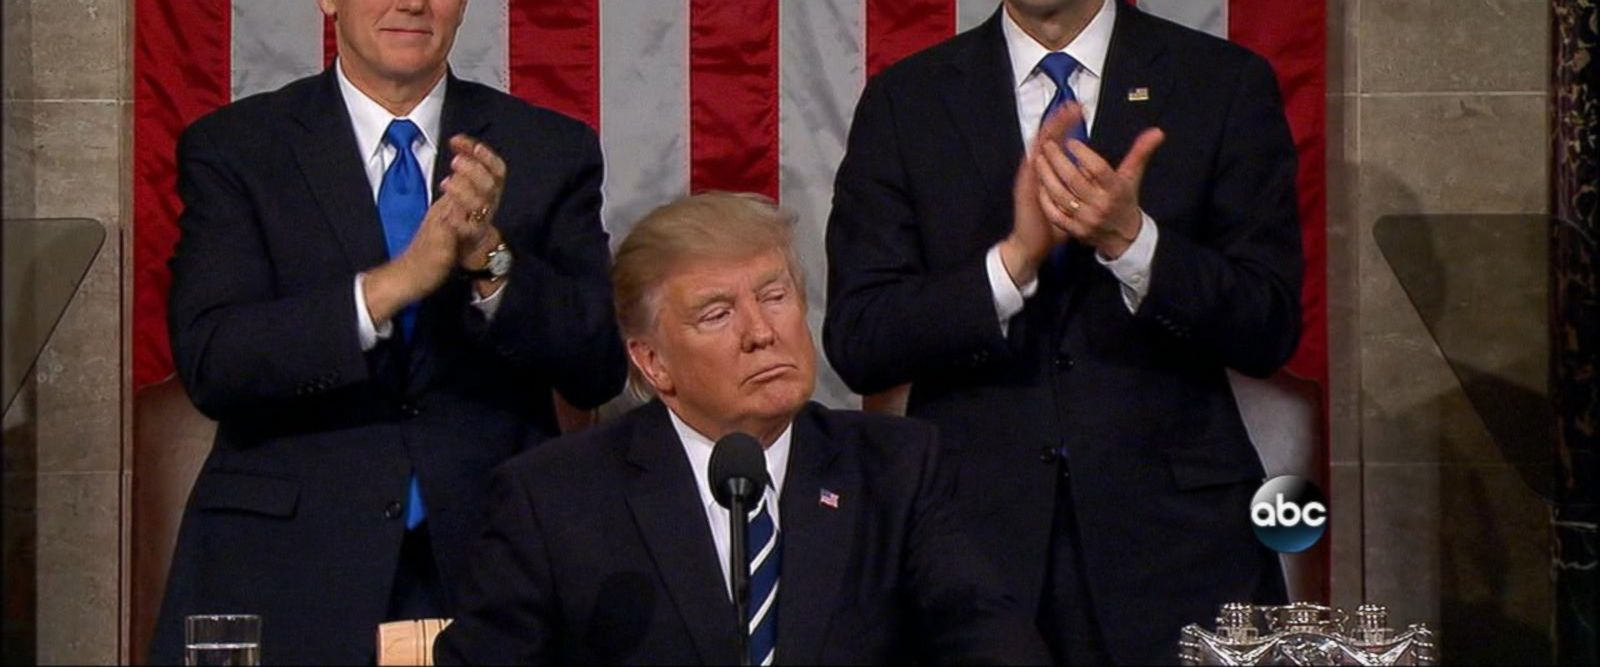 VIDEO: Analysis of the president's joint address to congress